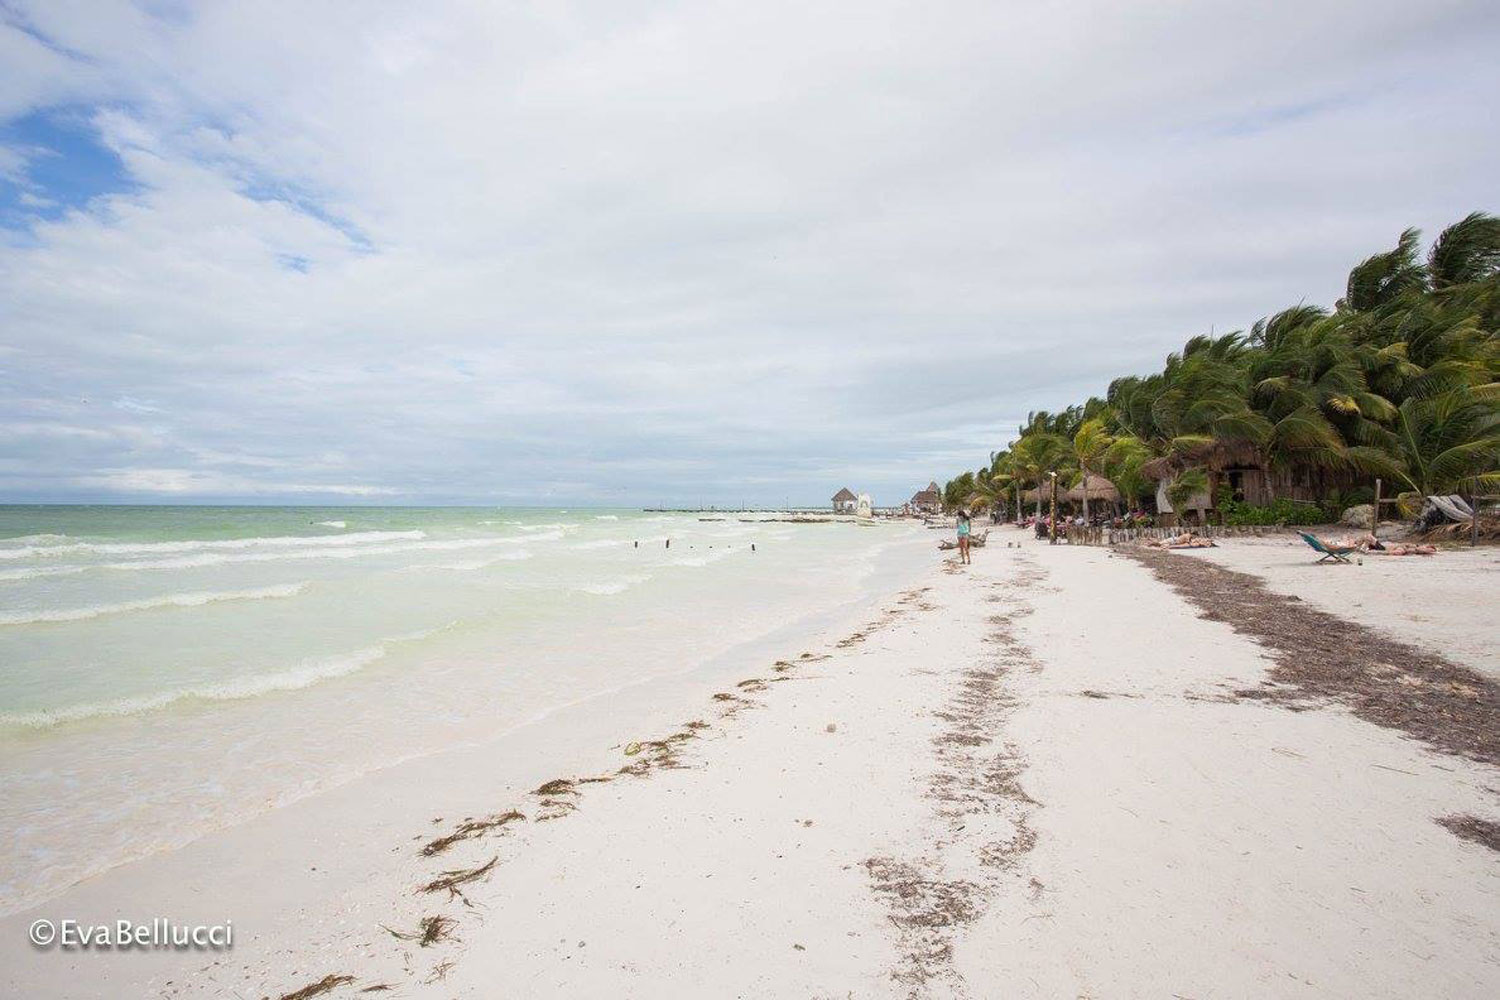 Hammocks_and_Ruins_Riviera_Maya_What_to_Do_Cancun_Playa_Del_Carmen_Islands_Isla_Holbox_5.jpg